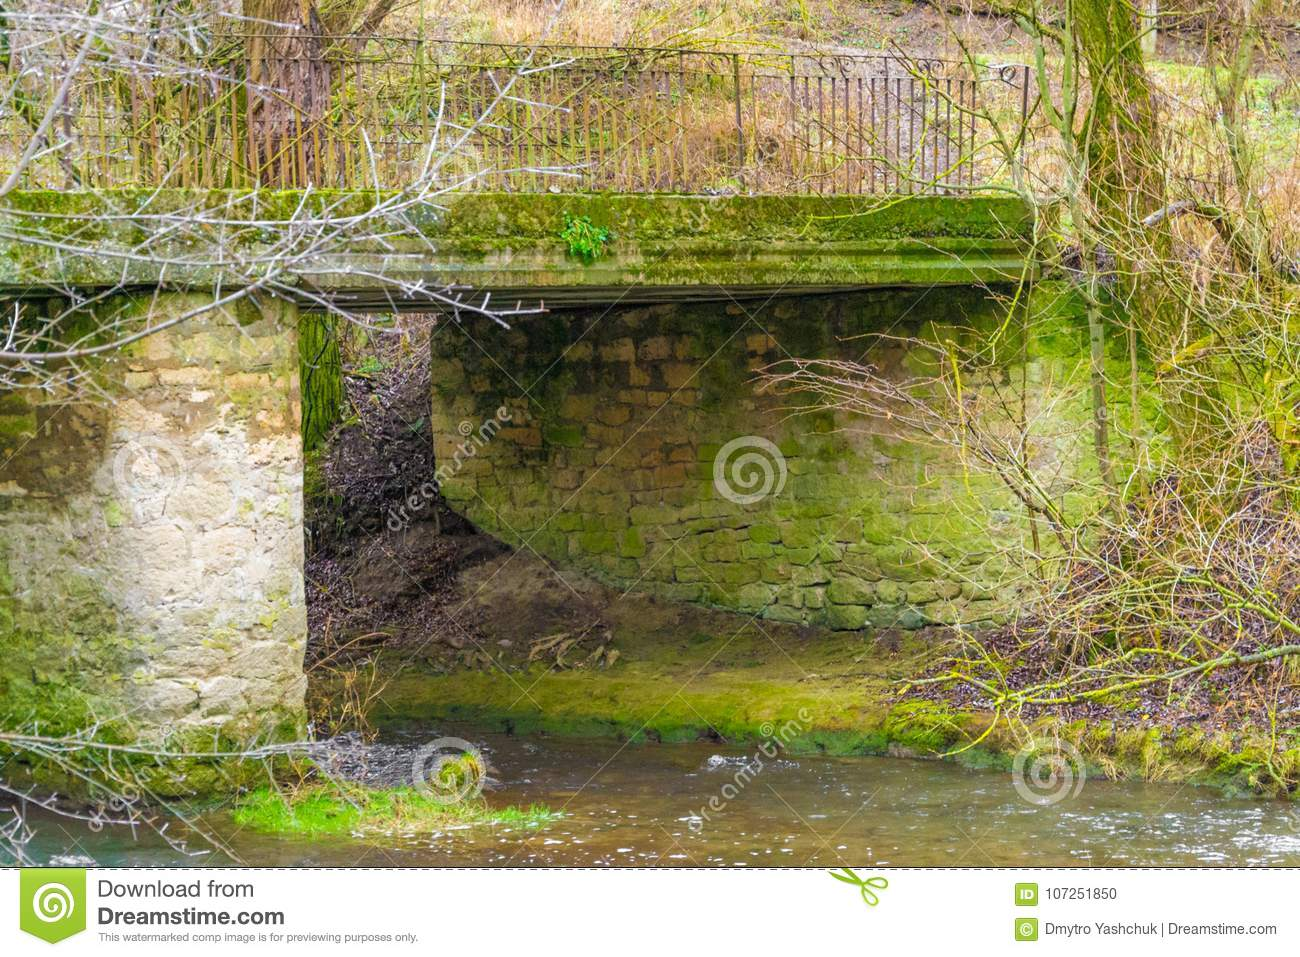 A riverside image of Hisley Bridge an old packhorse bridge over the river